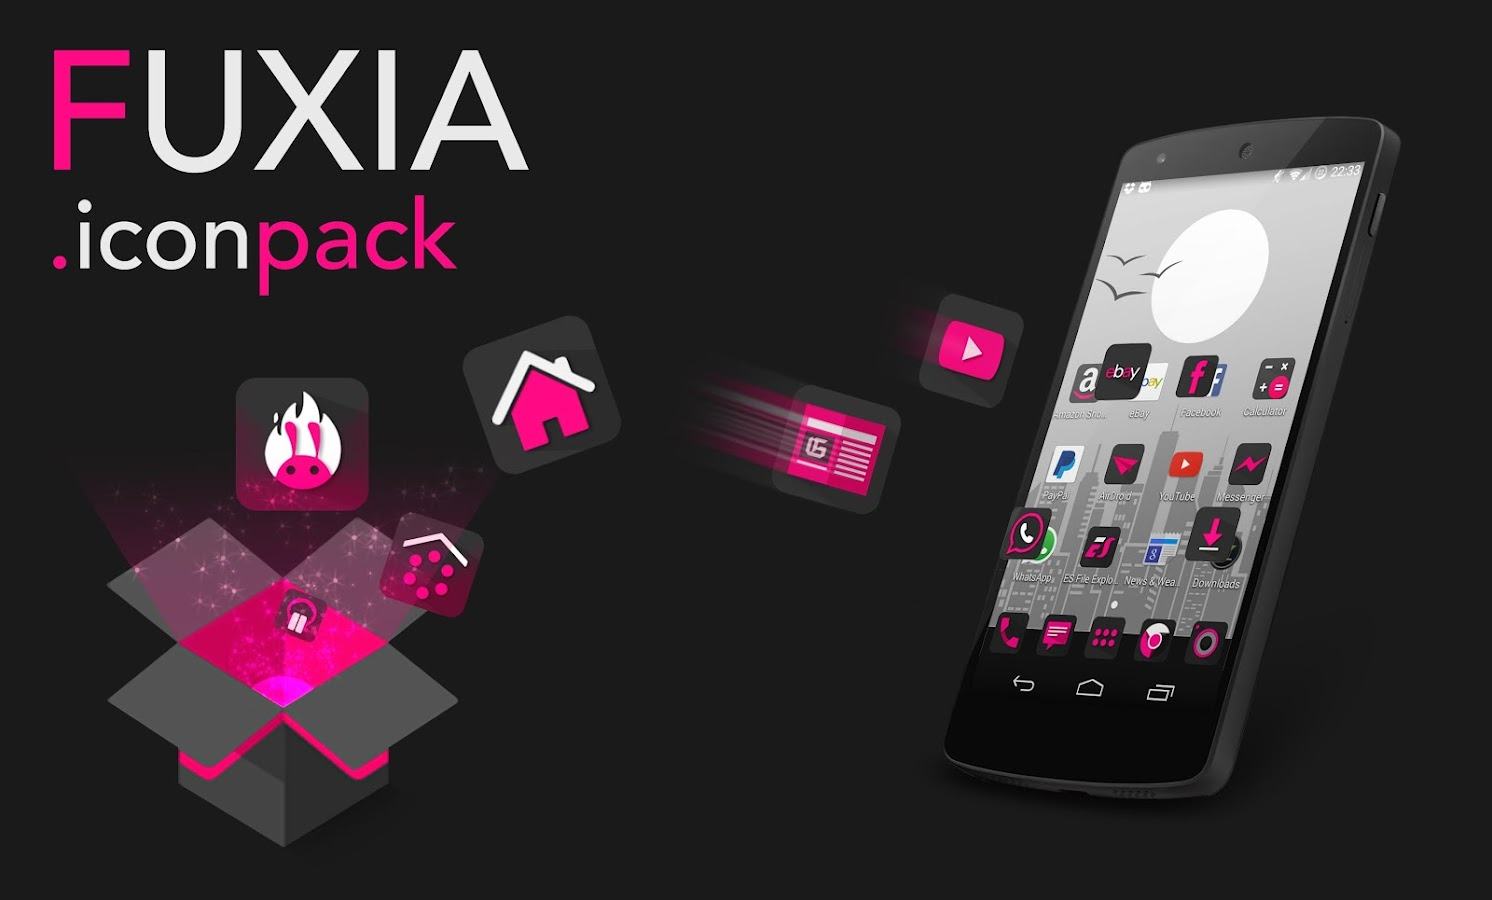 Fuxia - Icon pack Screenshot 0